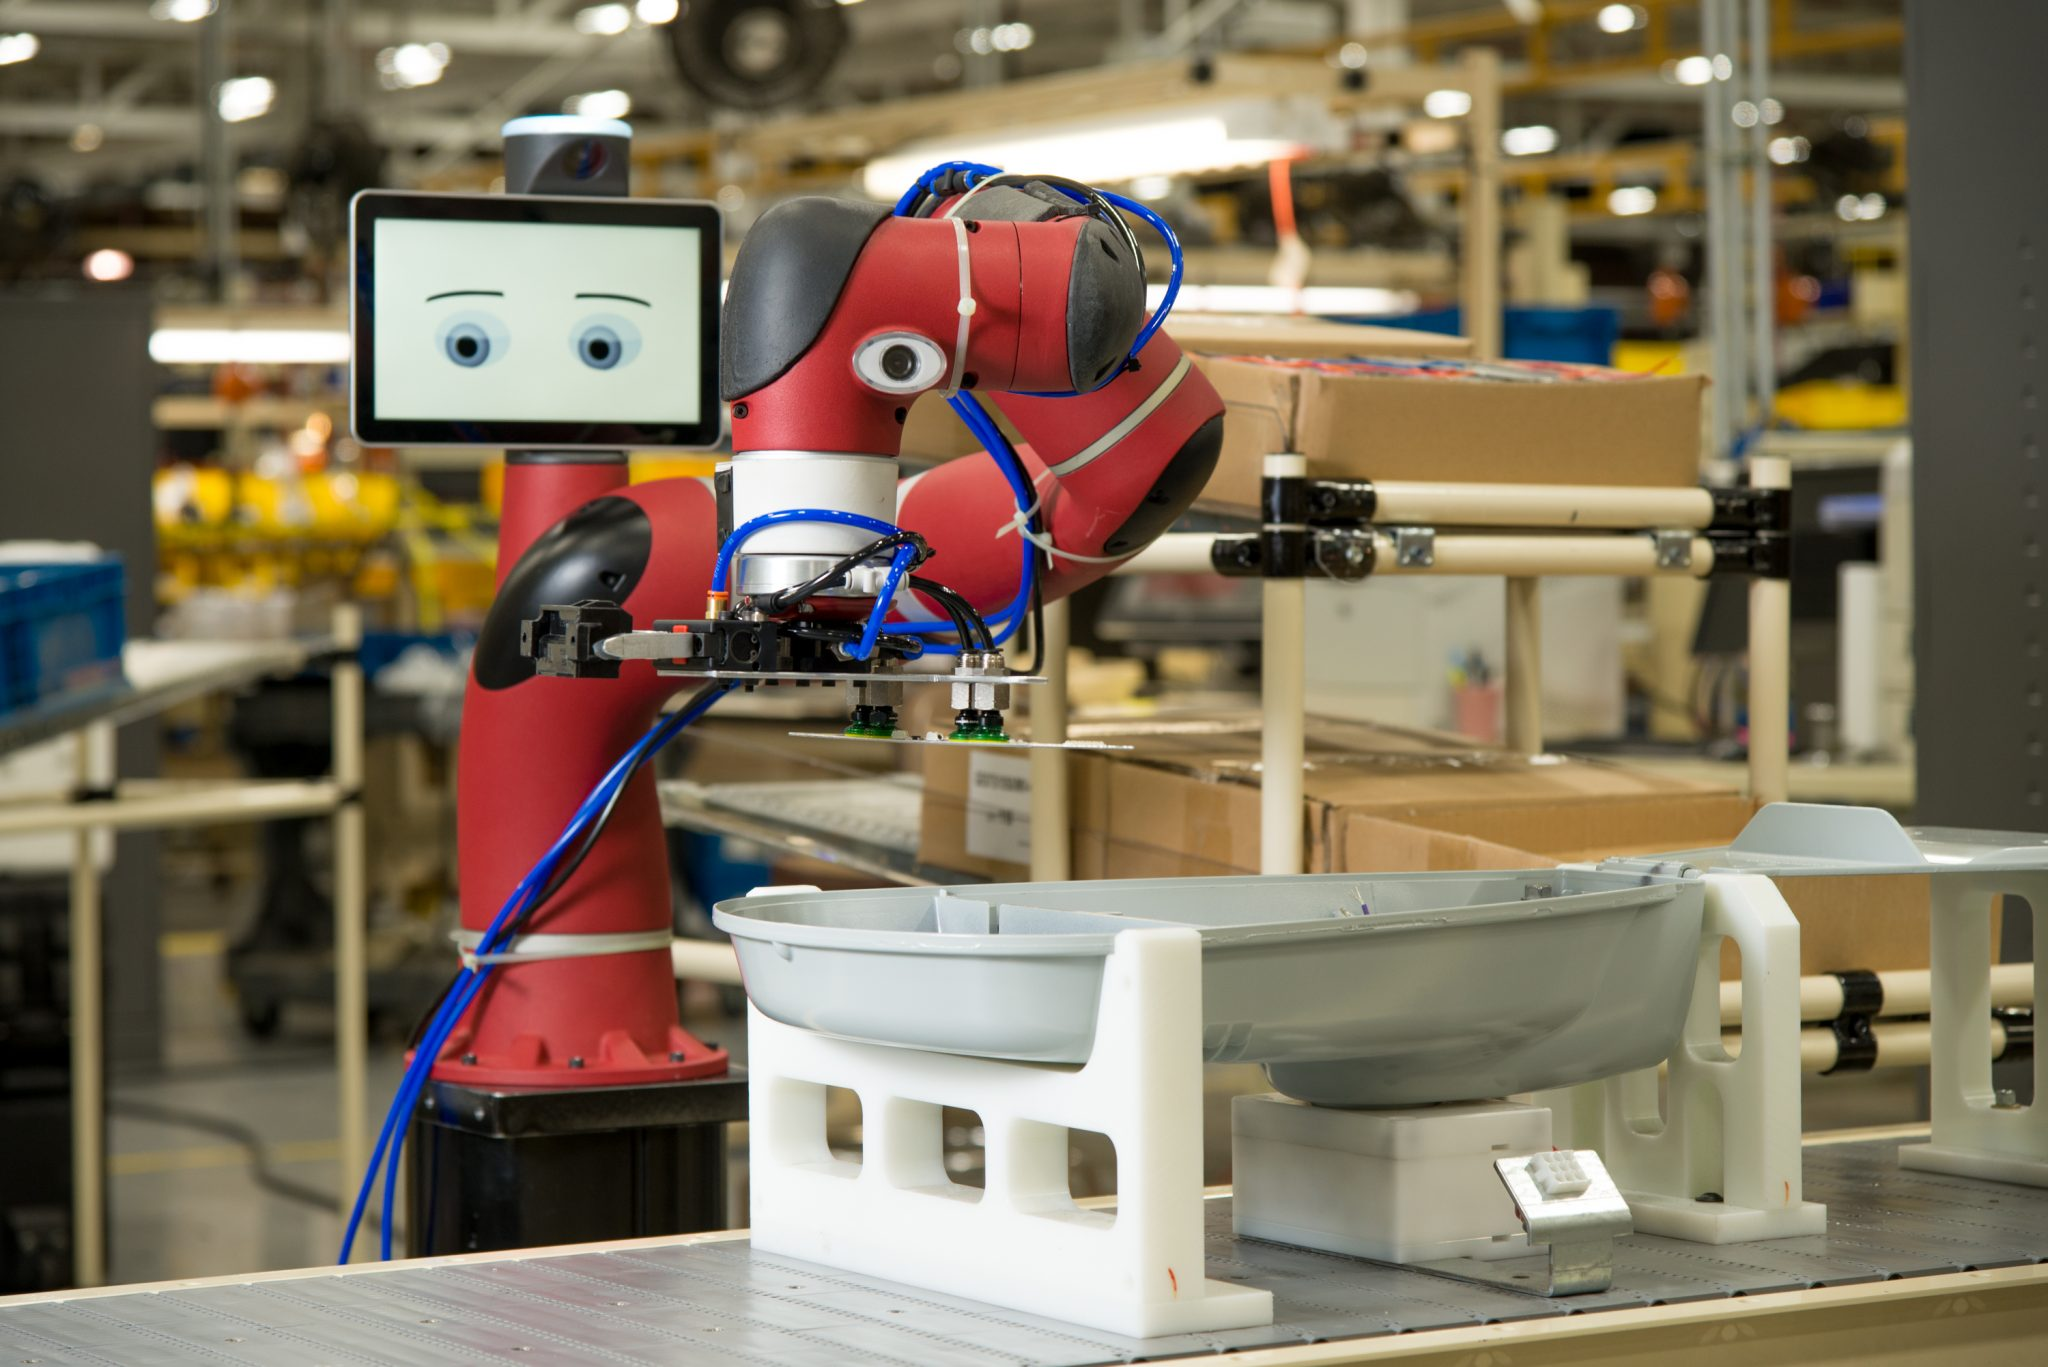 Sawyer collaborative robots